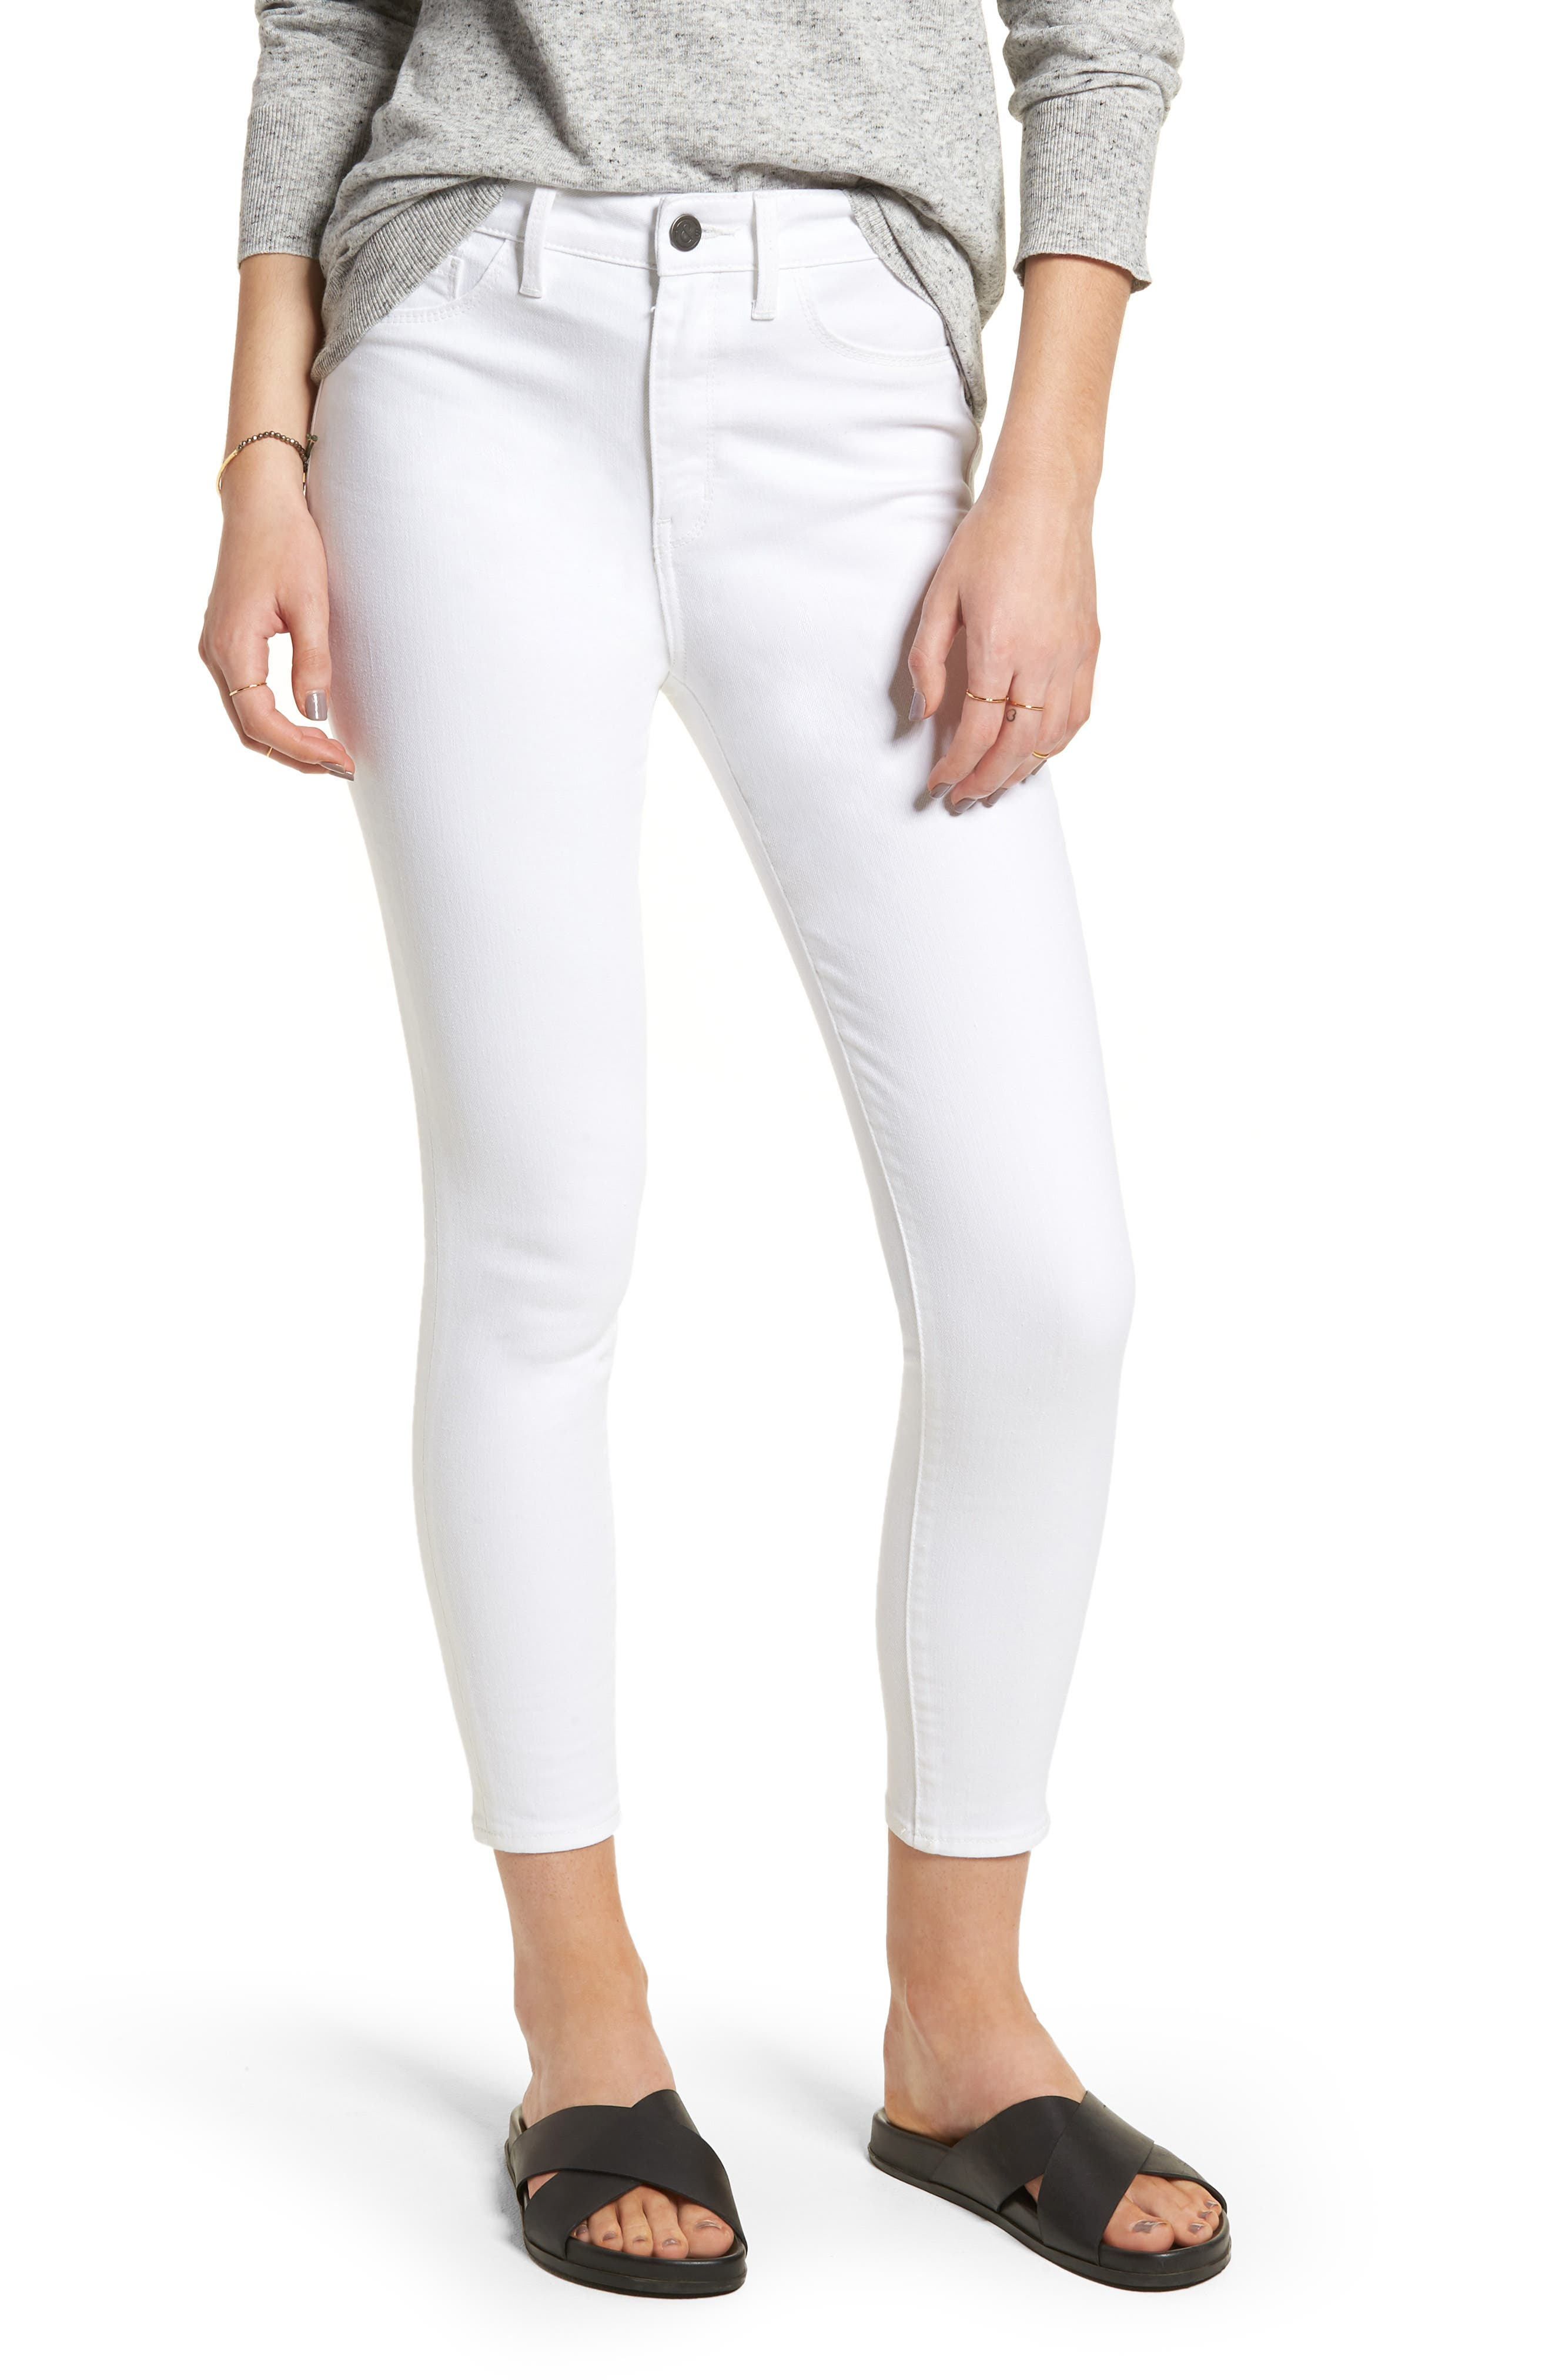 Charity High Waist Crop Skinny Jeans,                             Main thumbnail 1, color,                             100